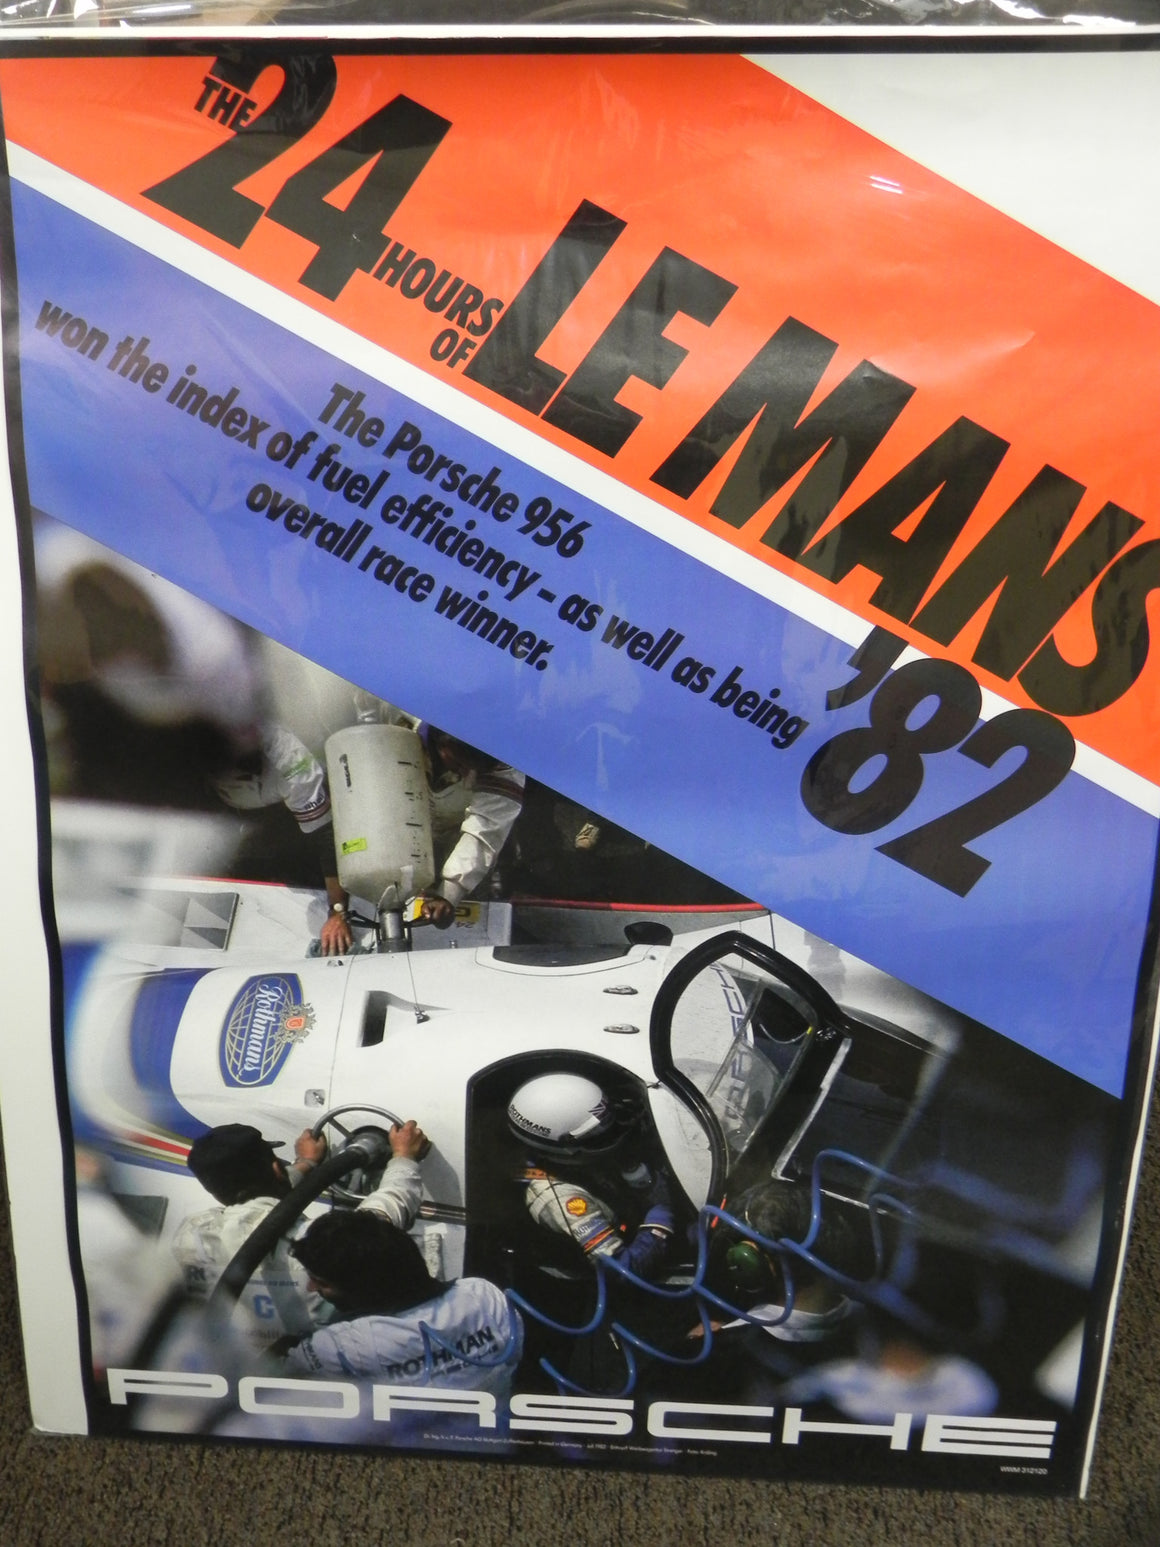 (Original) 24 Hours of Le Mans 956 Porsche Poster